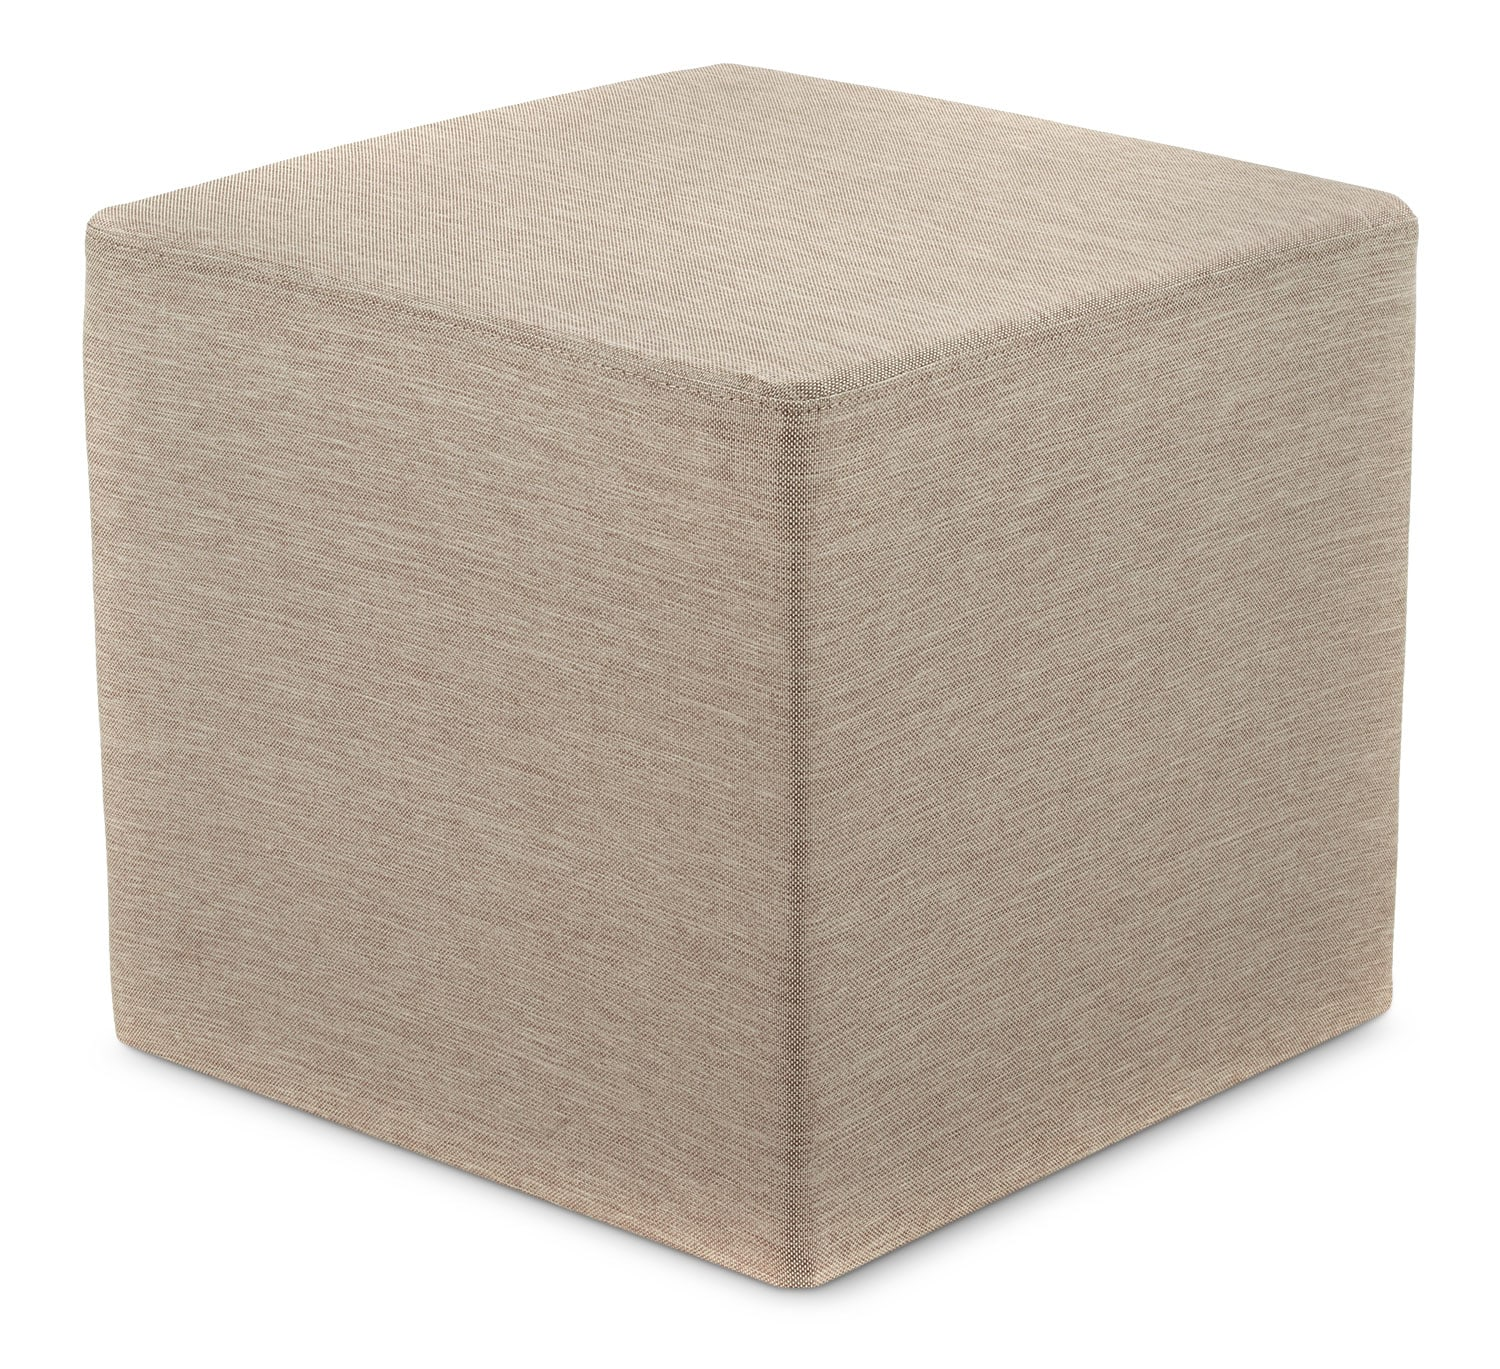 Outdoor Furniture - Sasha Outdoor Ottoman - Beige